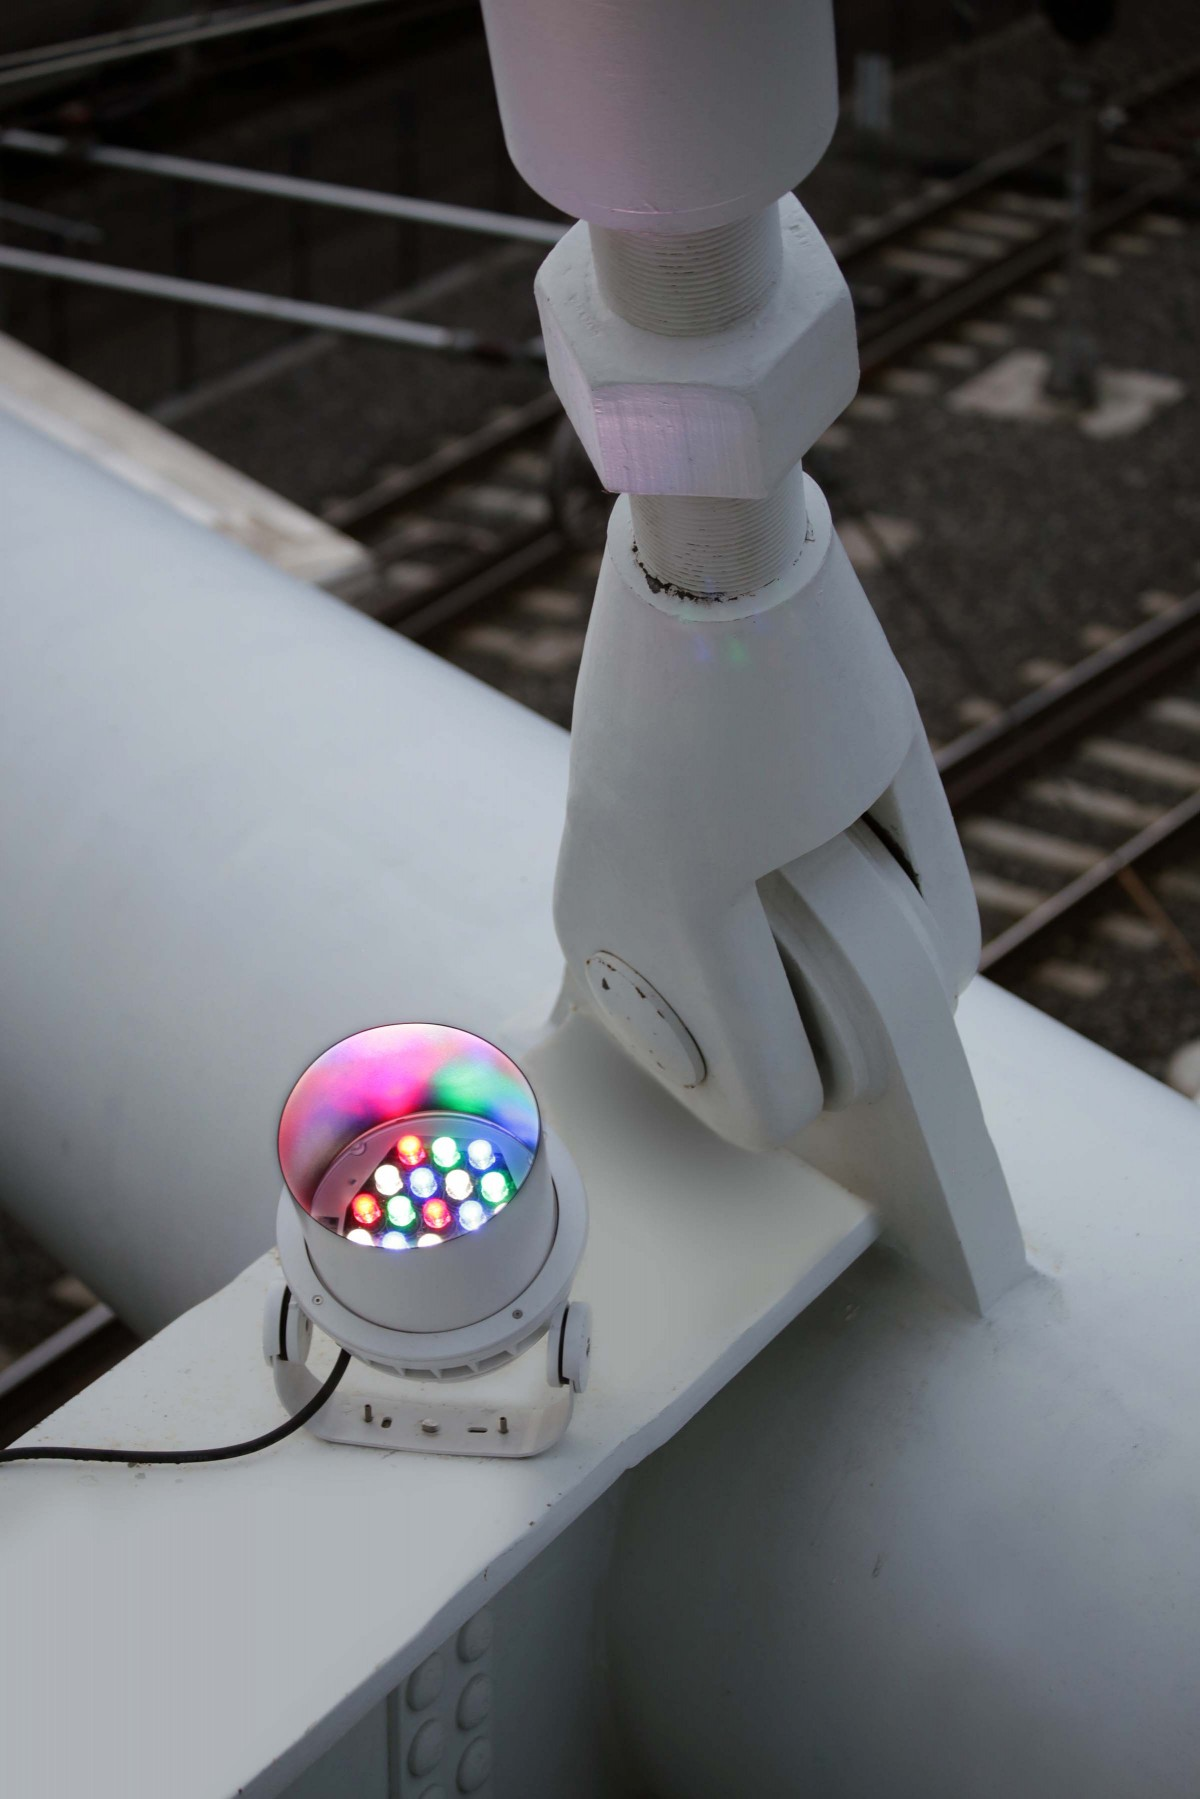 Lumenbeam luminaires create a wayfinding aid and heighten safety on the bridge. – Ryan Linton